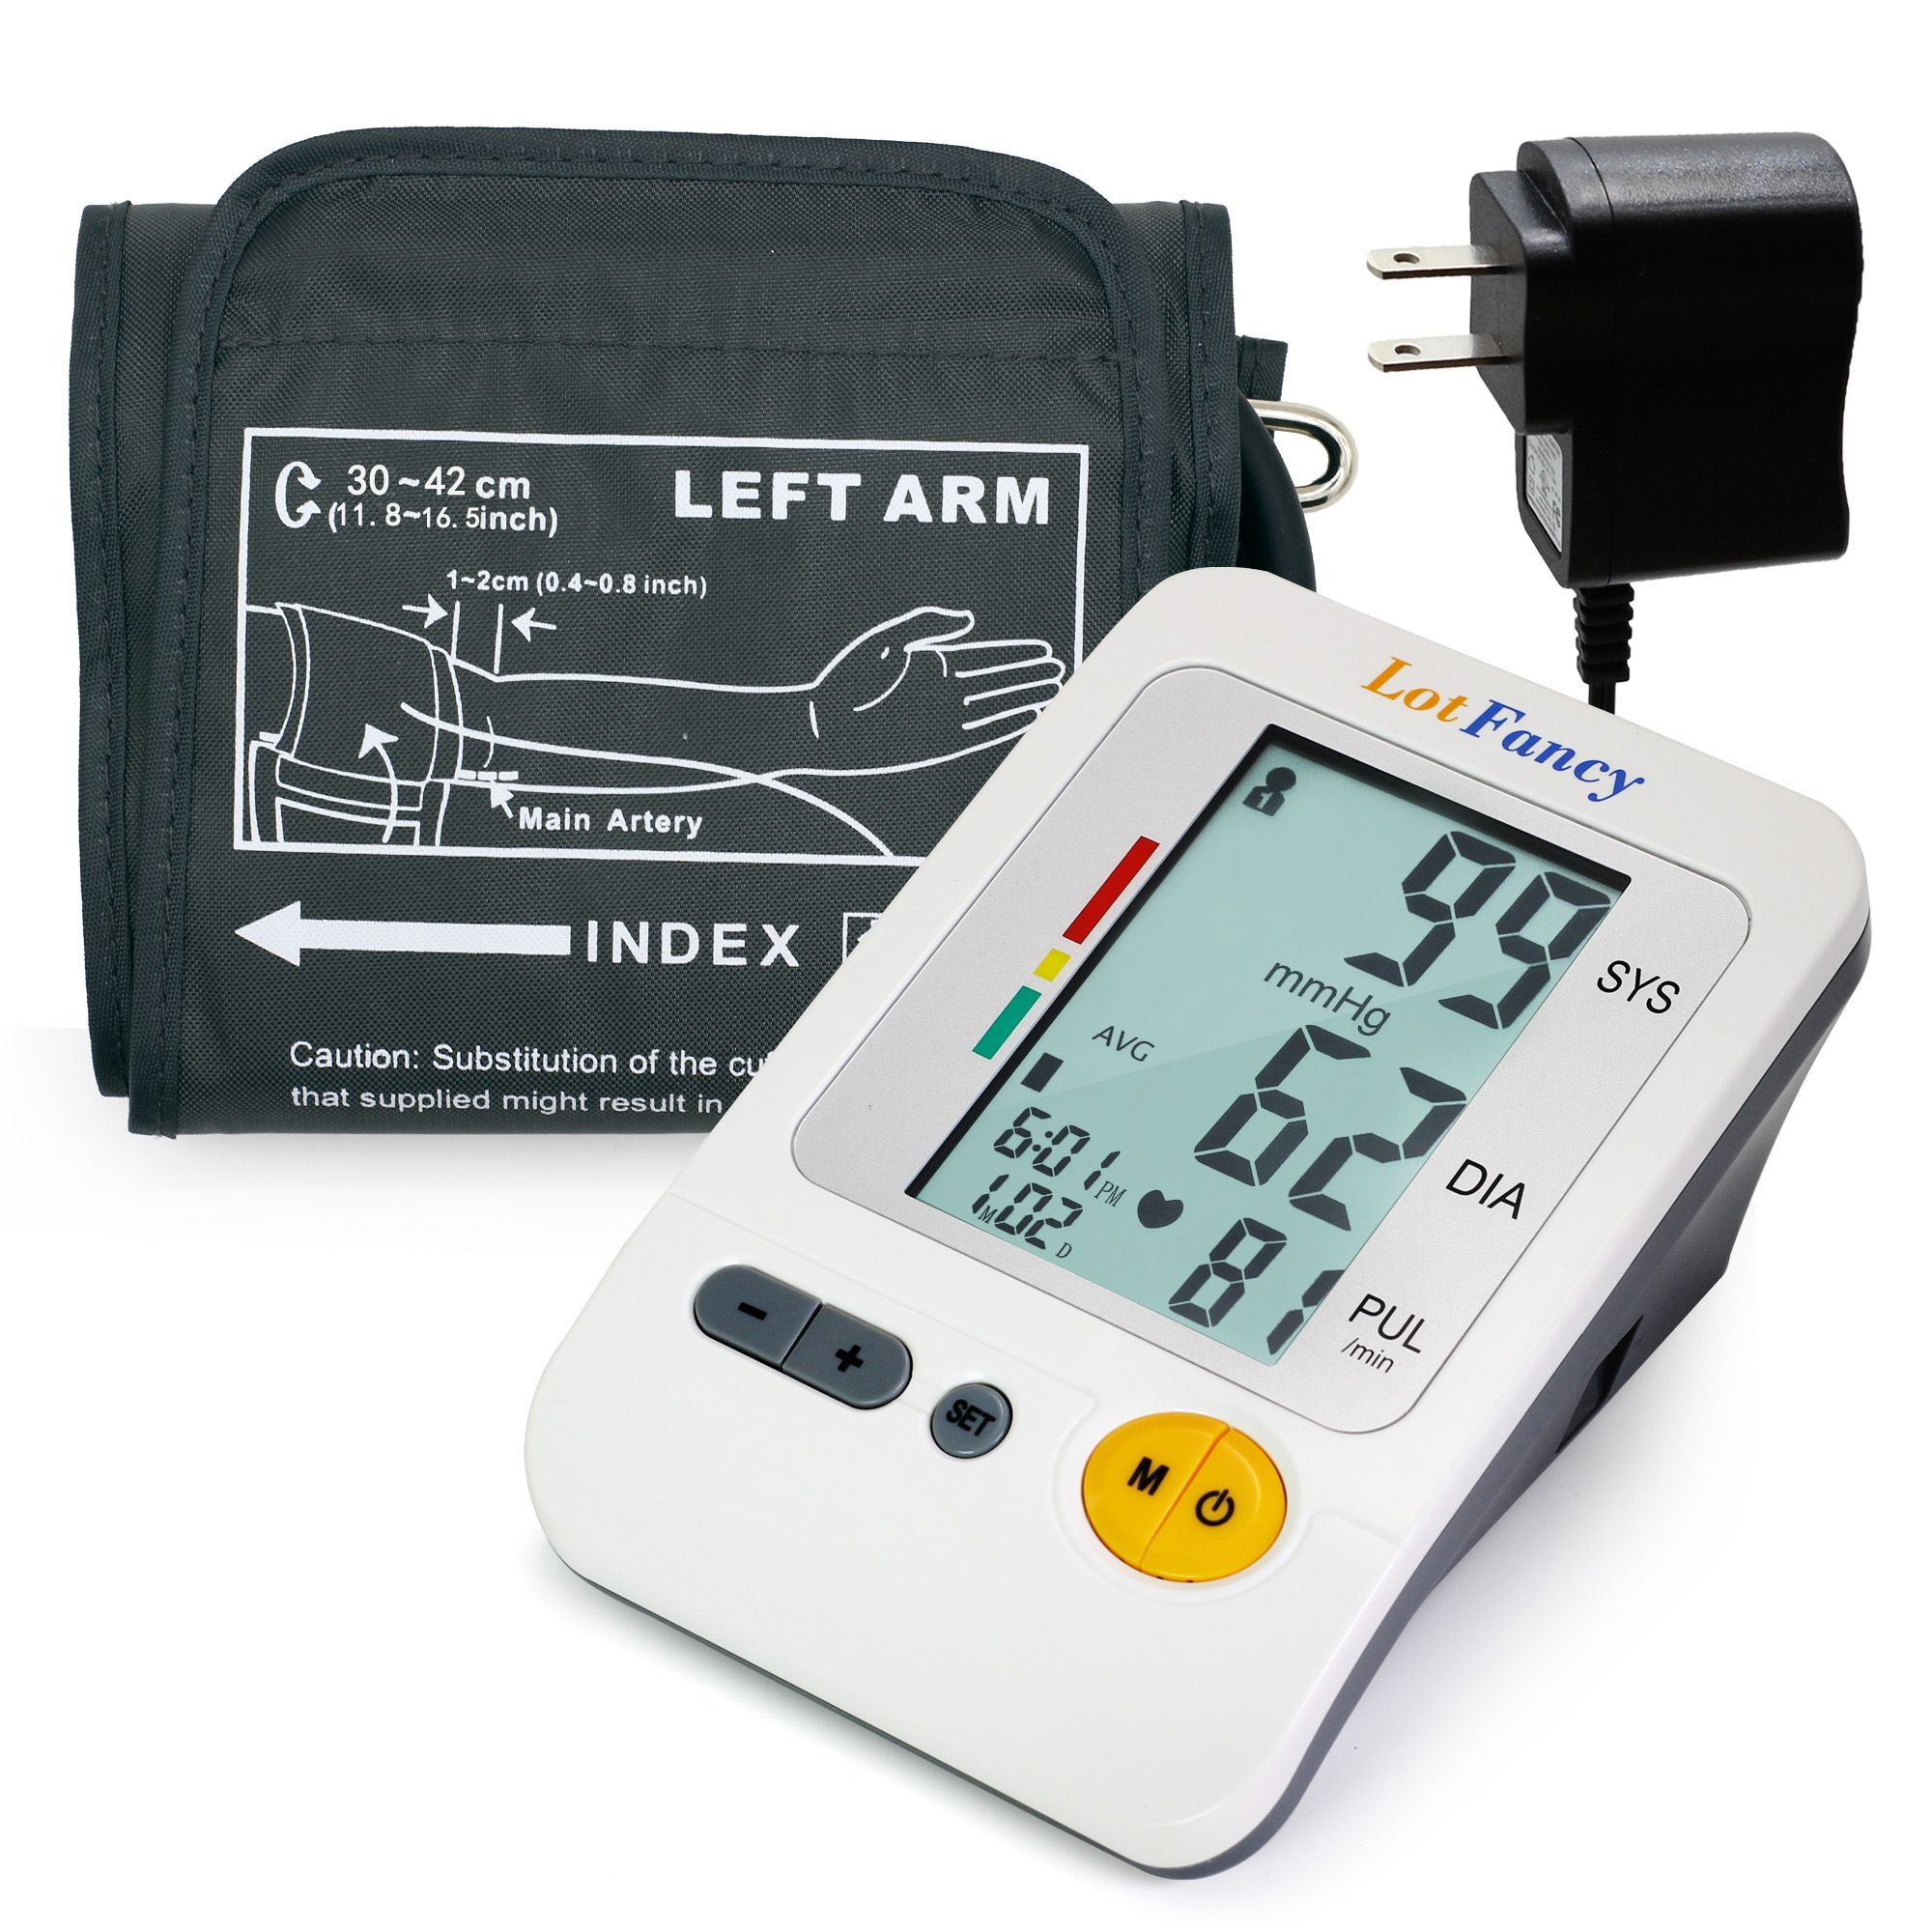 Best Blood Pressure Monitors Extra Large Cuffs - LotFancy Blood Pressure Monitor, Upper Arm Large Cuff Review